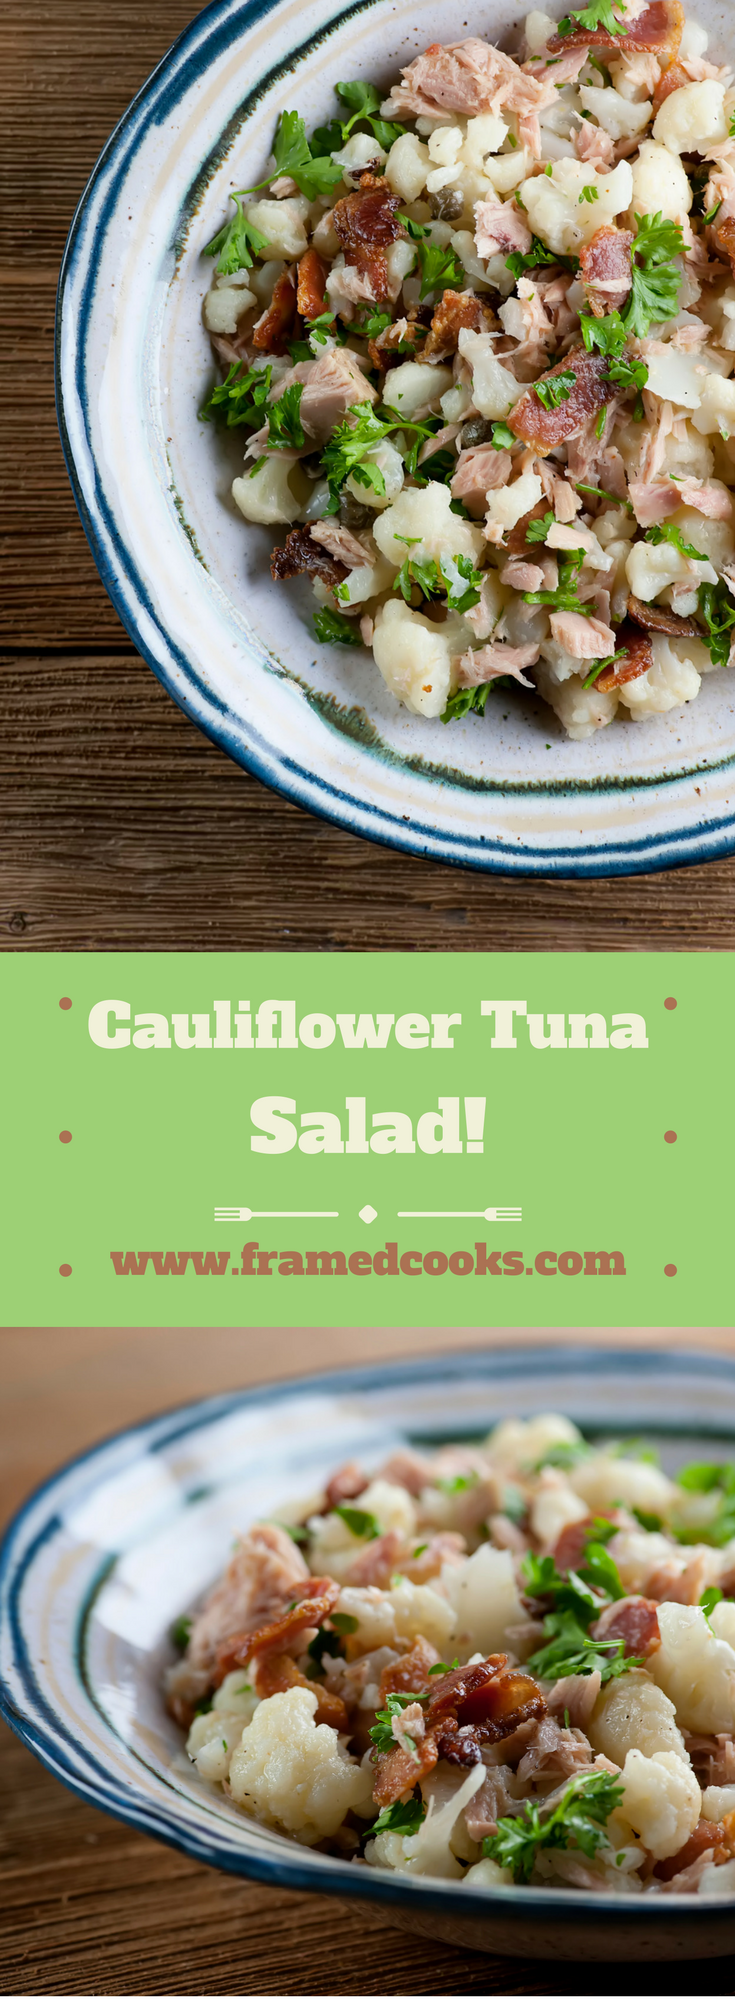 Shake up your lunch with this easy recipe for cauliflower tuna salad!